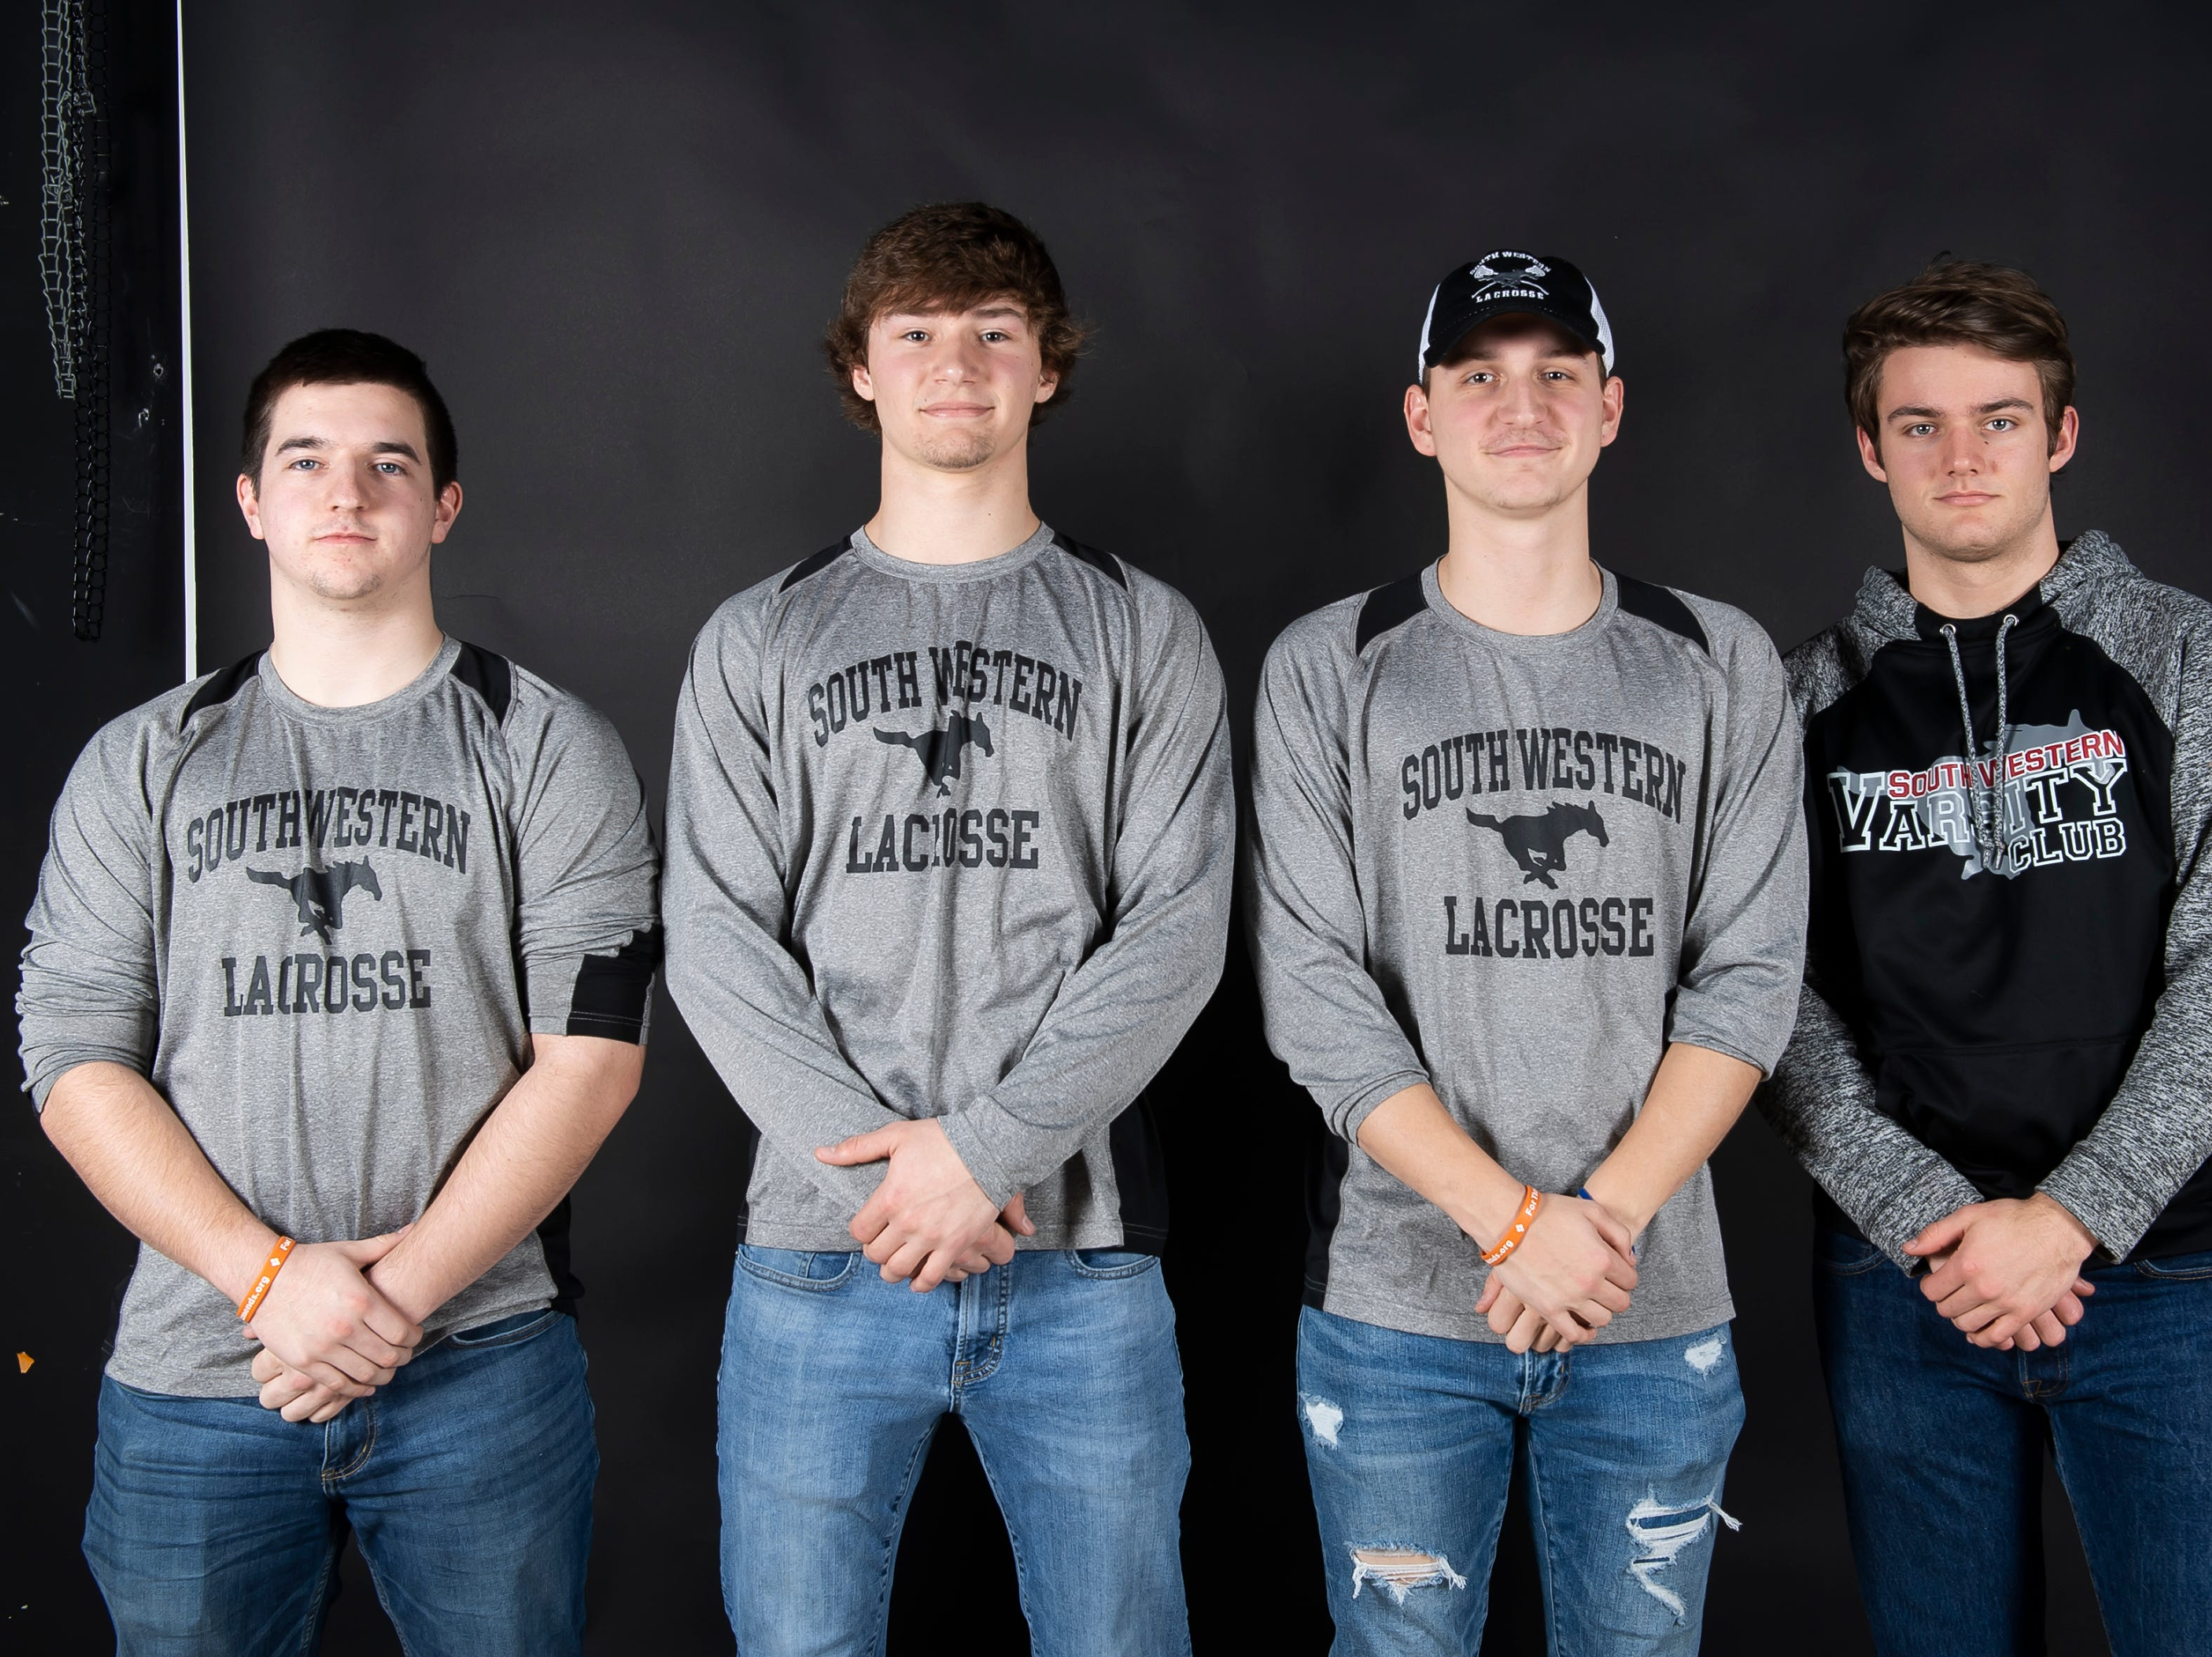 (From left) South Western boys lacrosse players Nick Boone, Ben Smith, James Strausbaugh and Dana McFalls pose in the GameTimePA photo booth during spring sports media day in York Sunday, March 10, 2019.